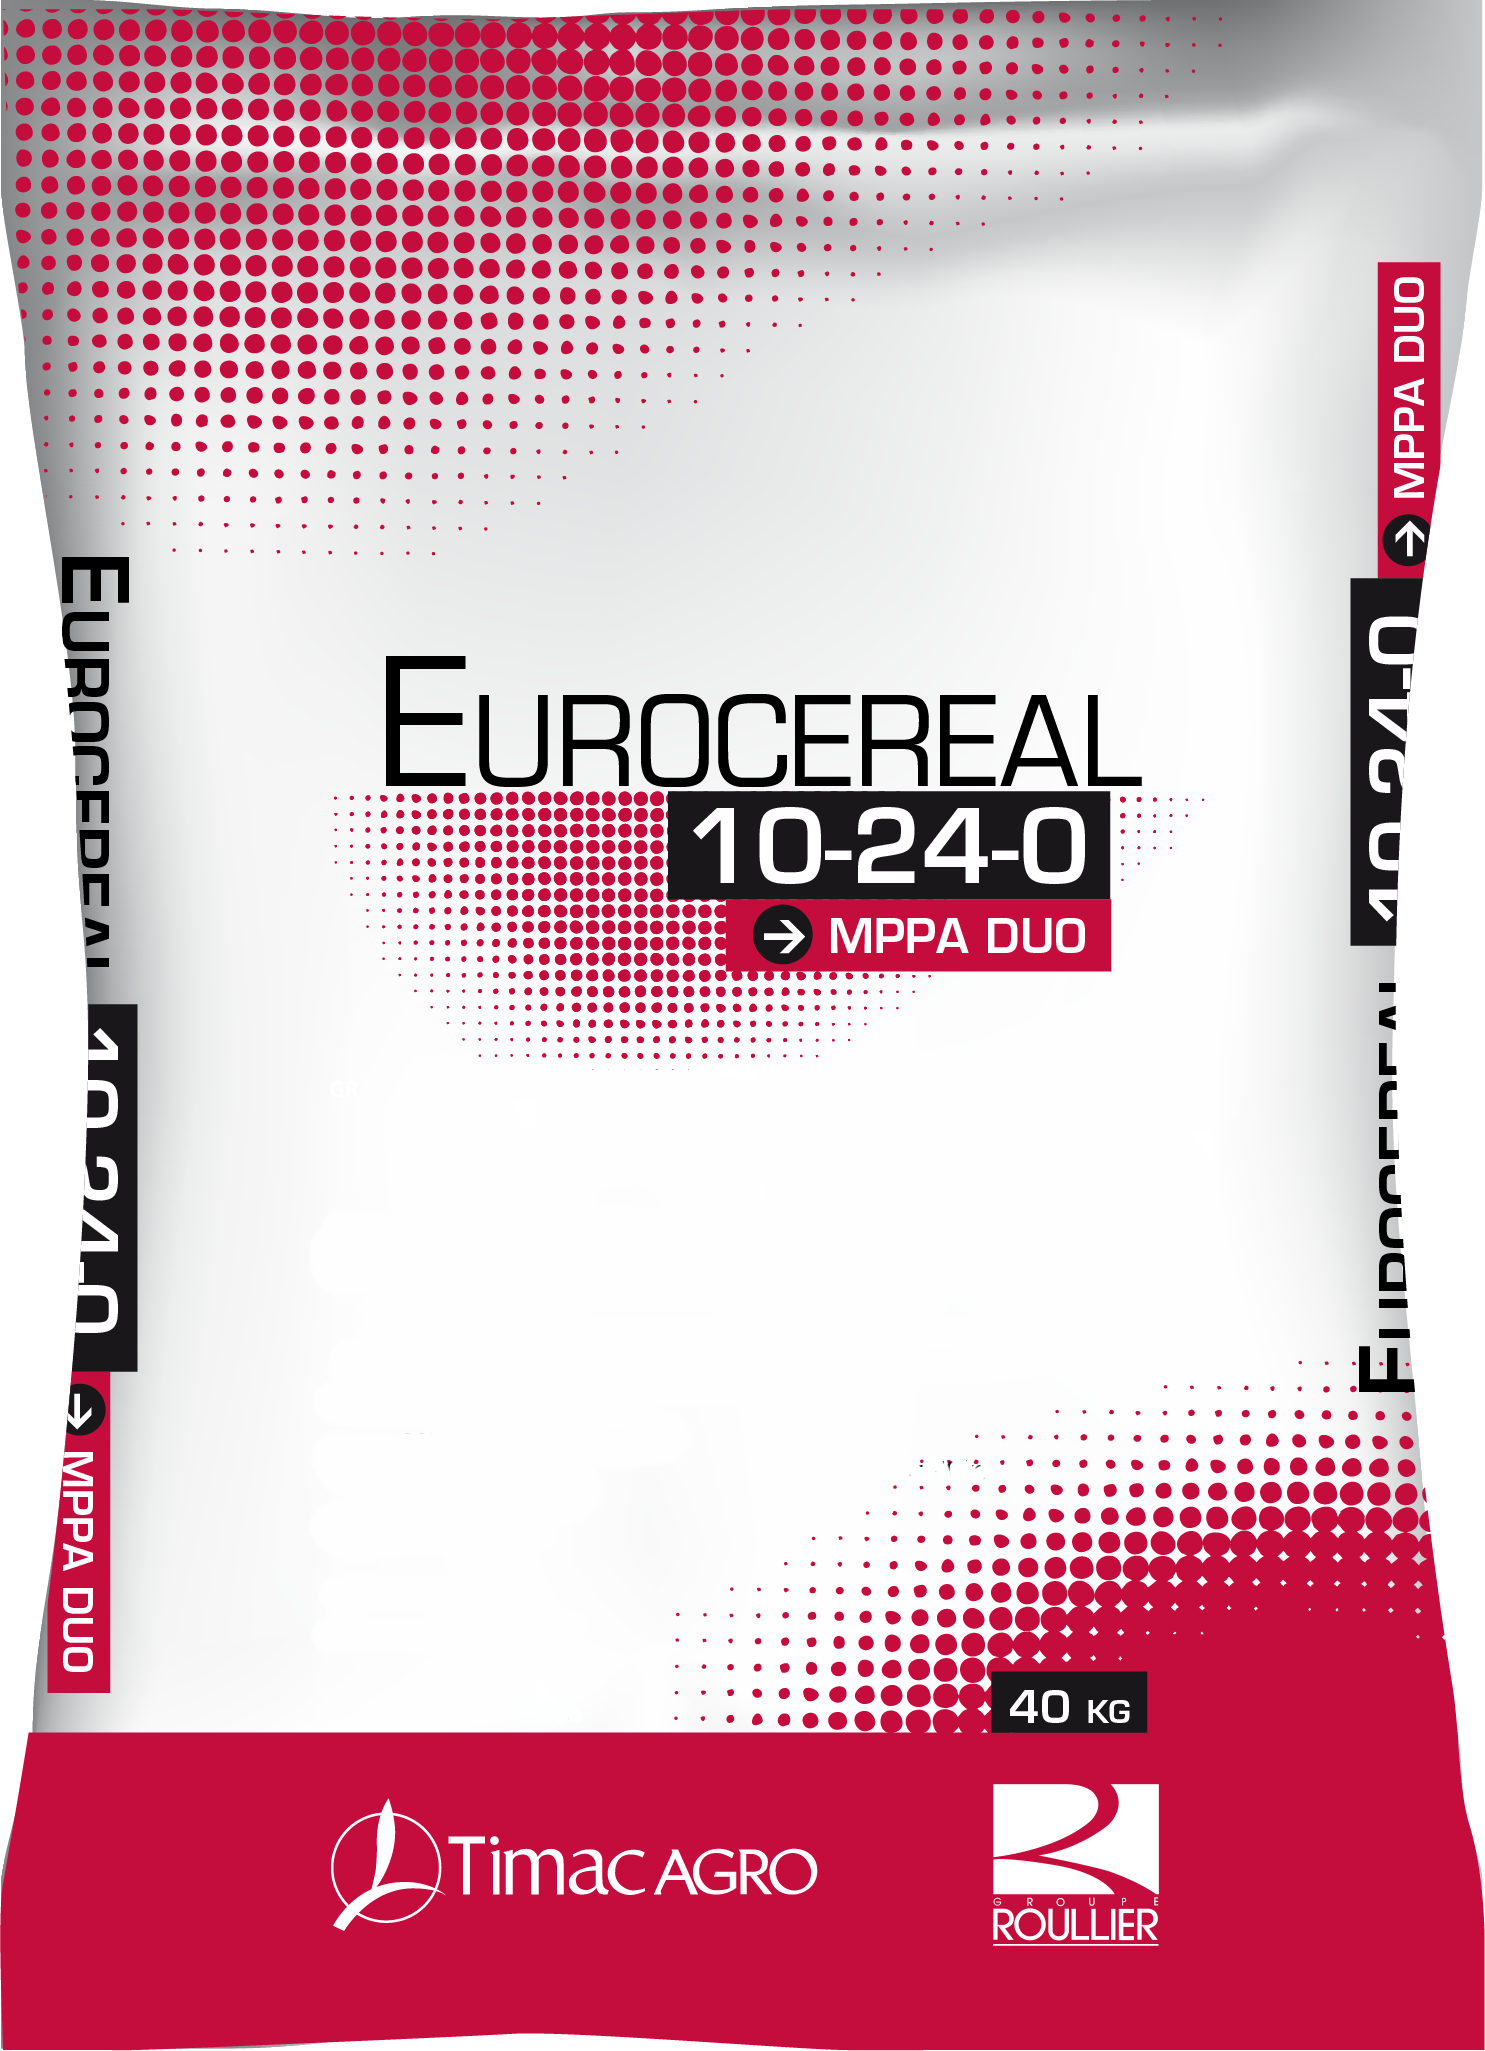 Eurocereal MPPA DUO